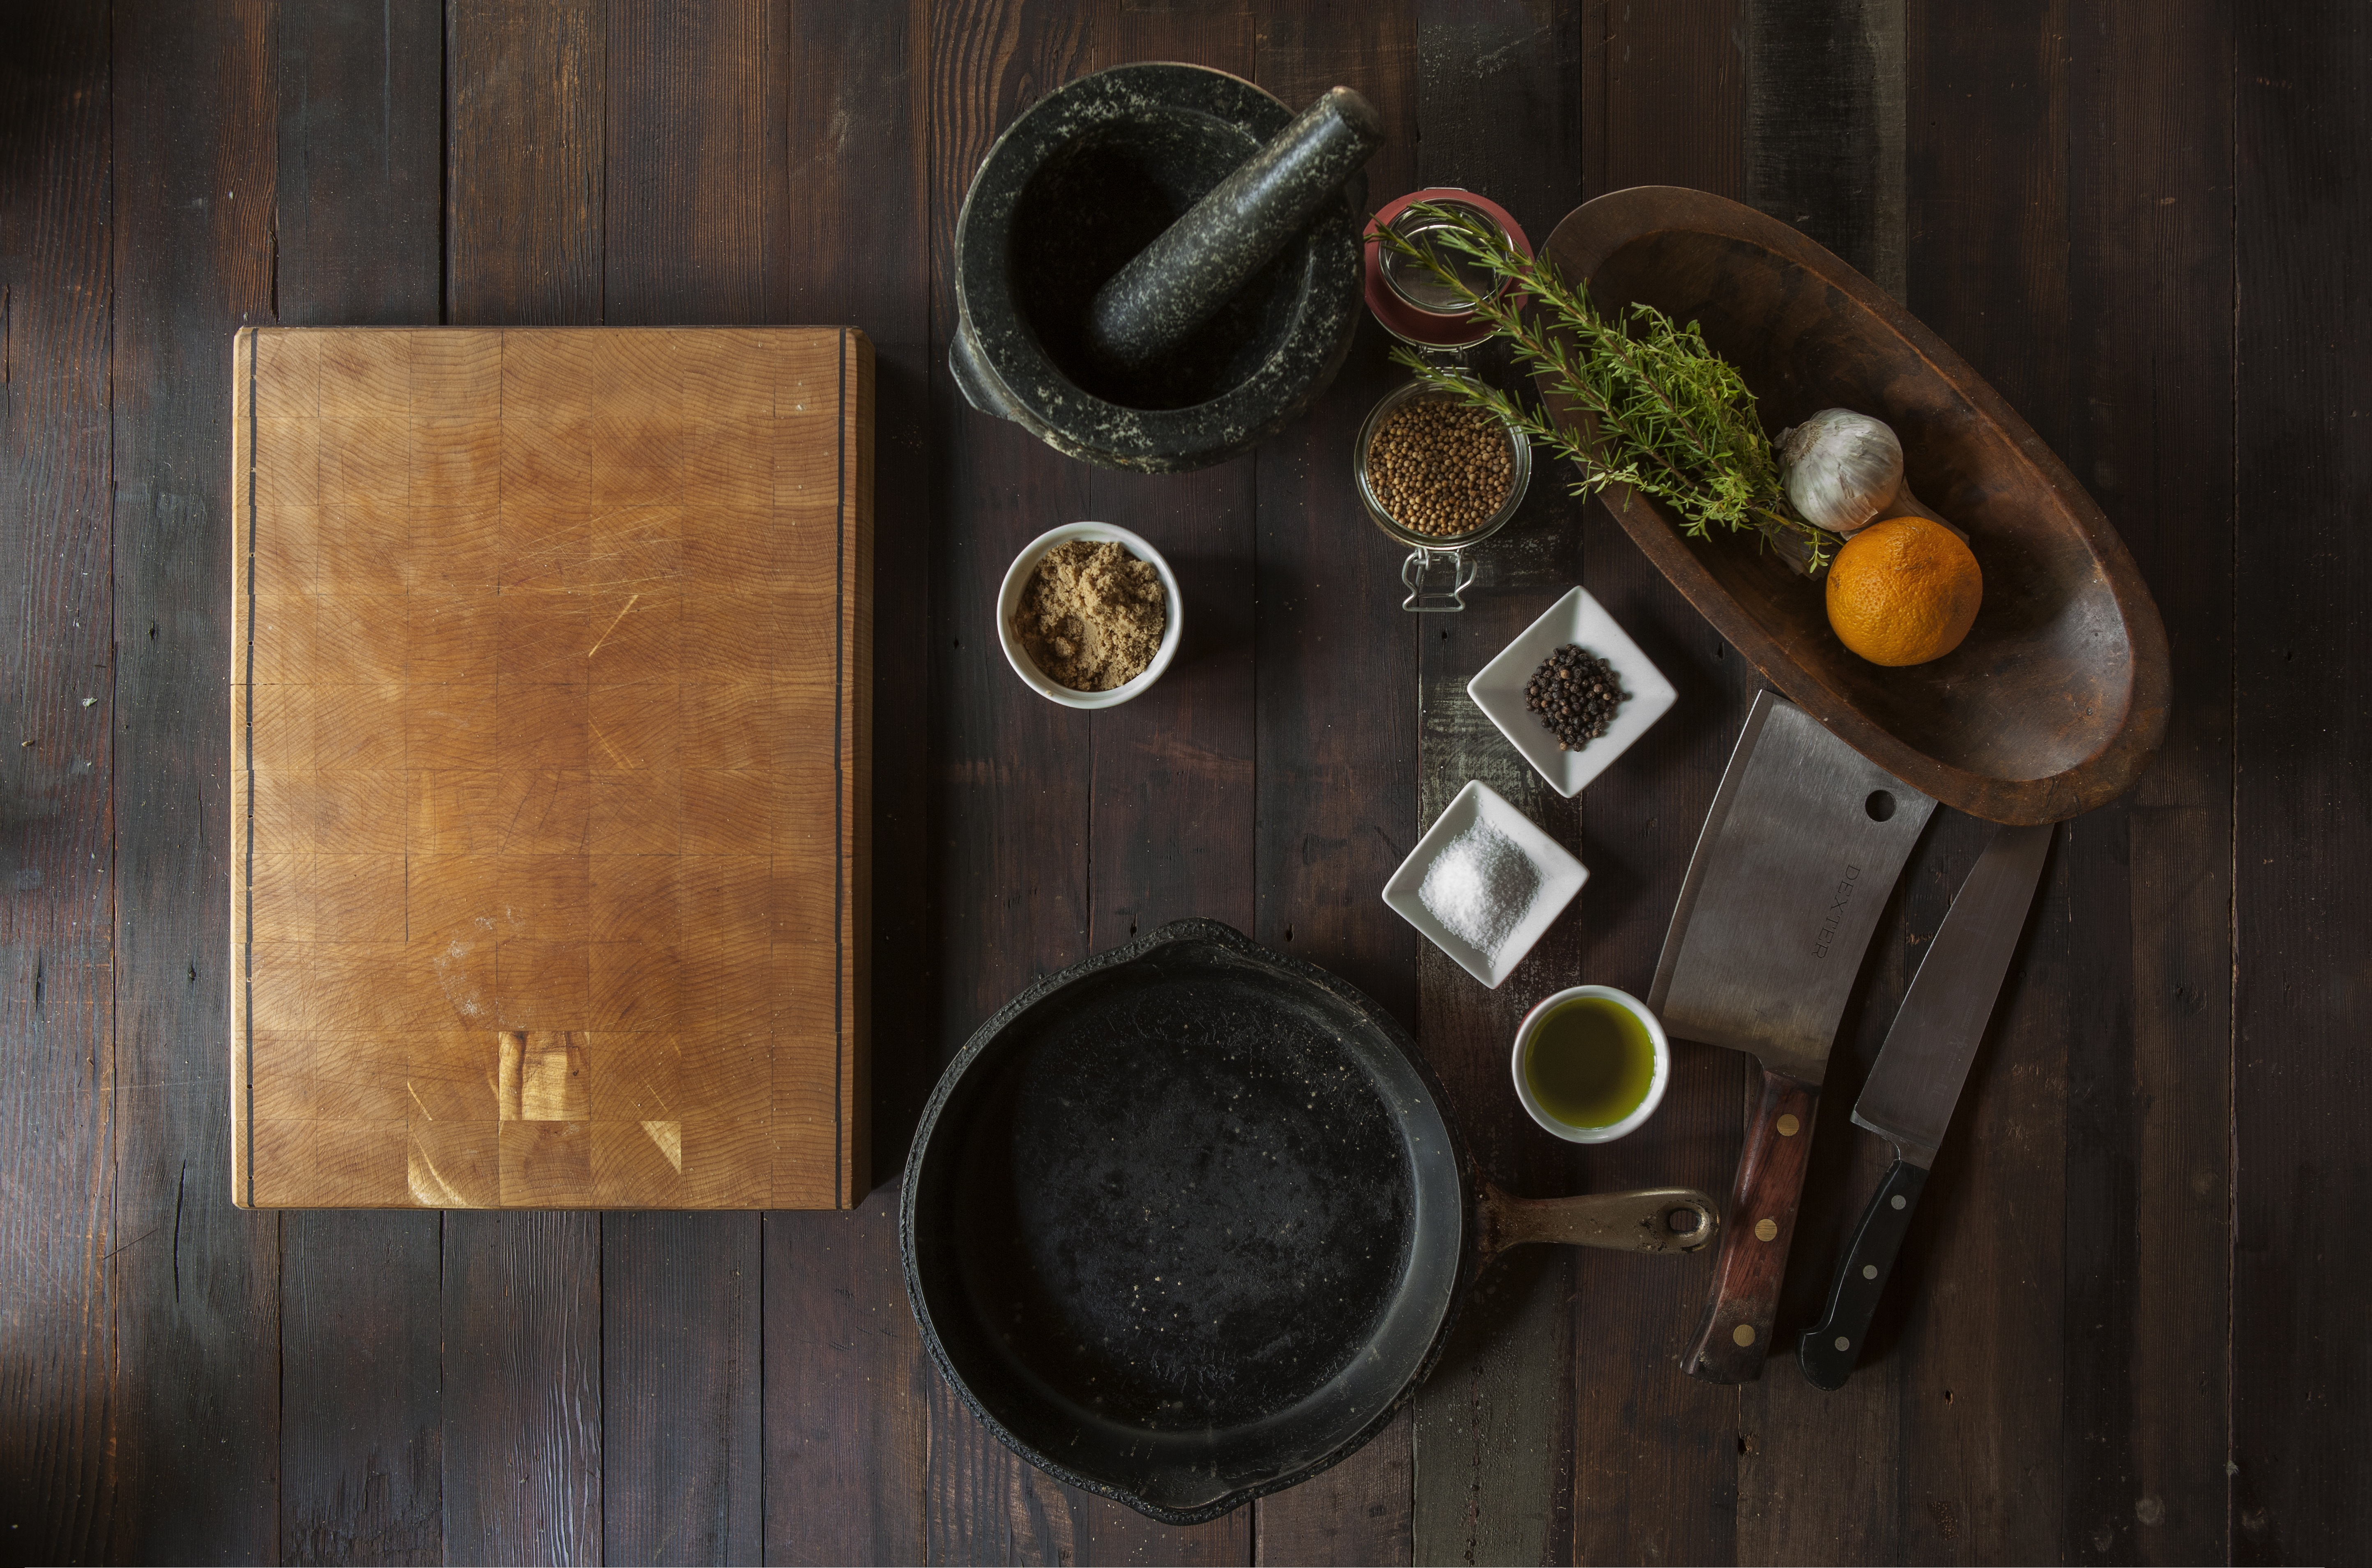 Kitchen With Food file:food-kitchen-cutting-board-cooking (23698174644)